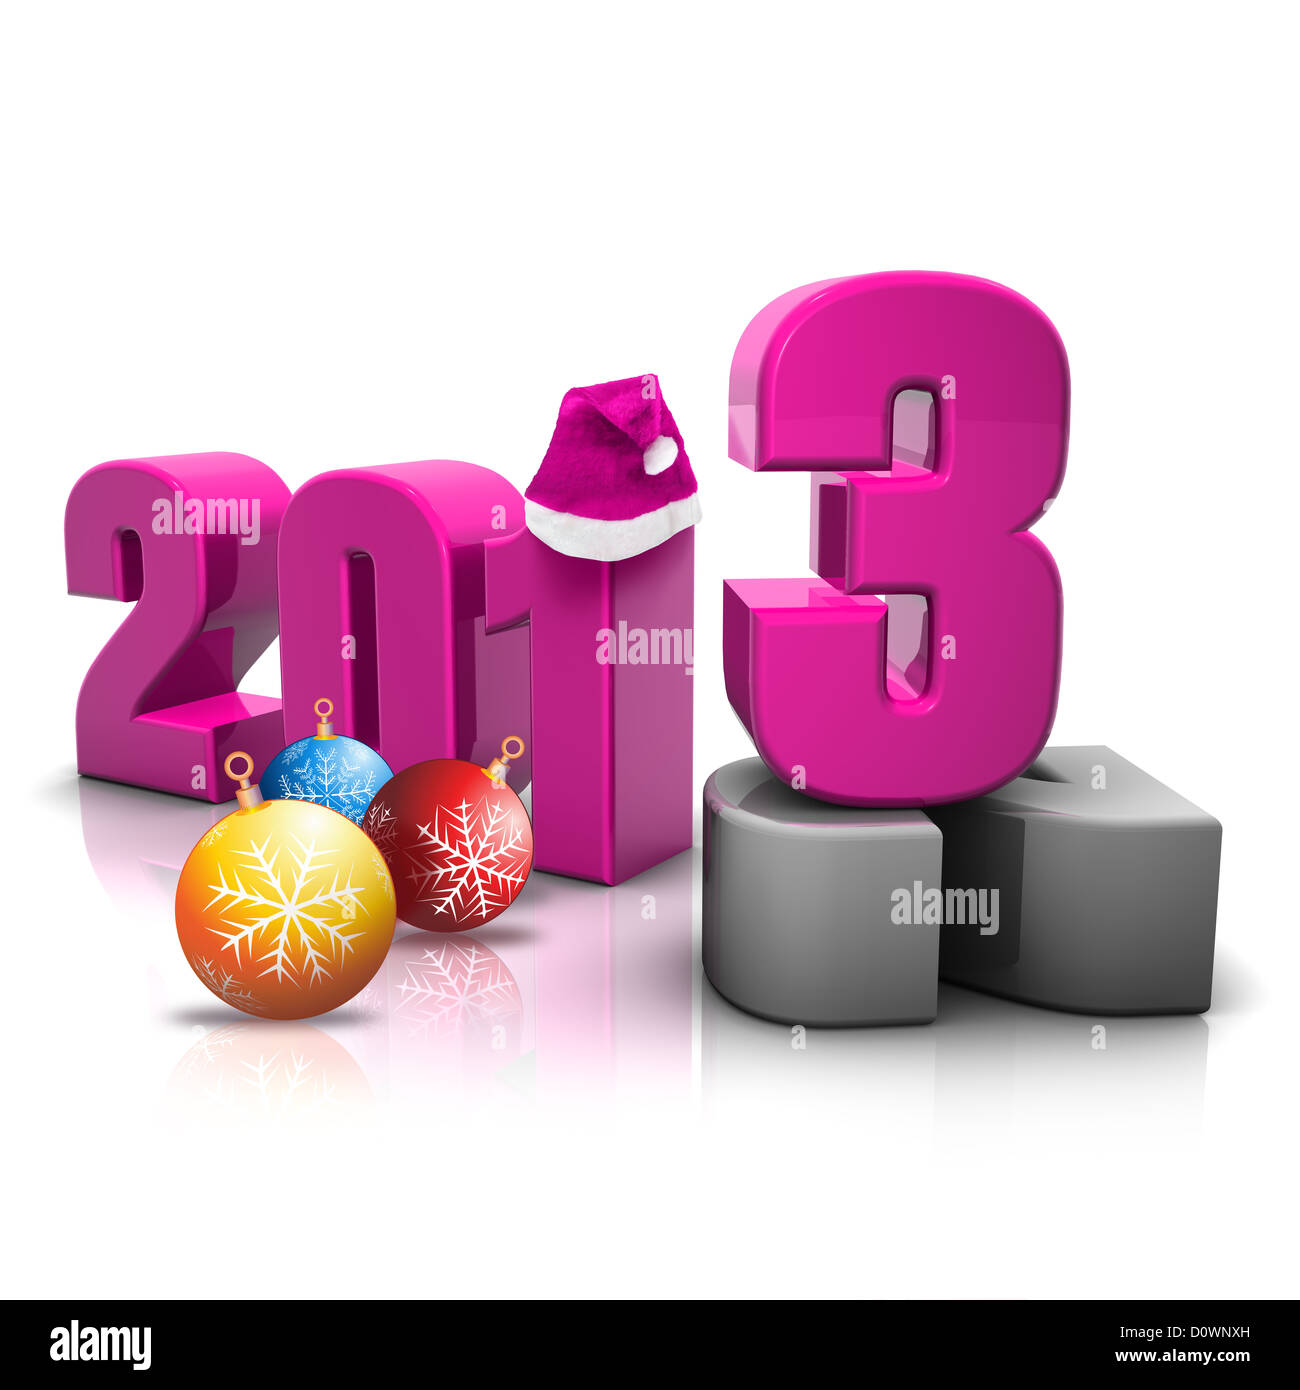 new year 2013 render - Stock Image